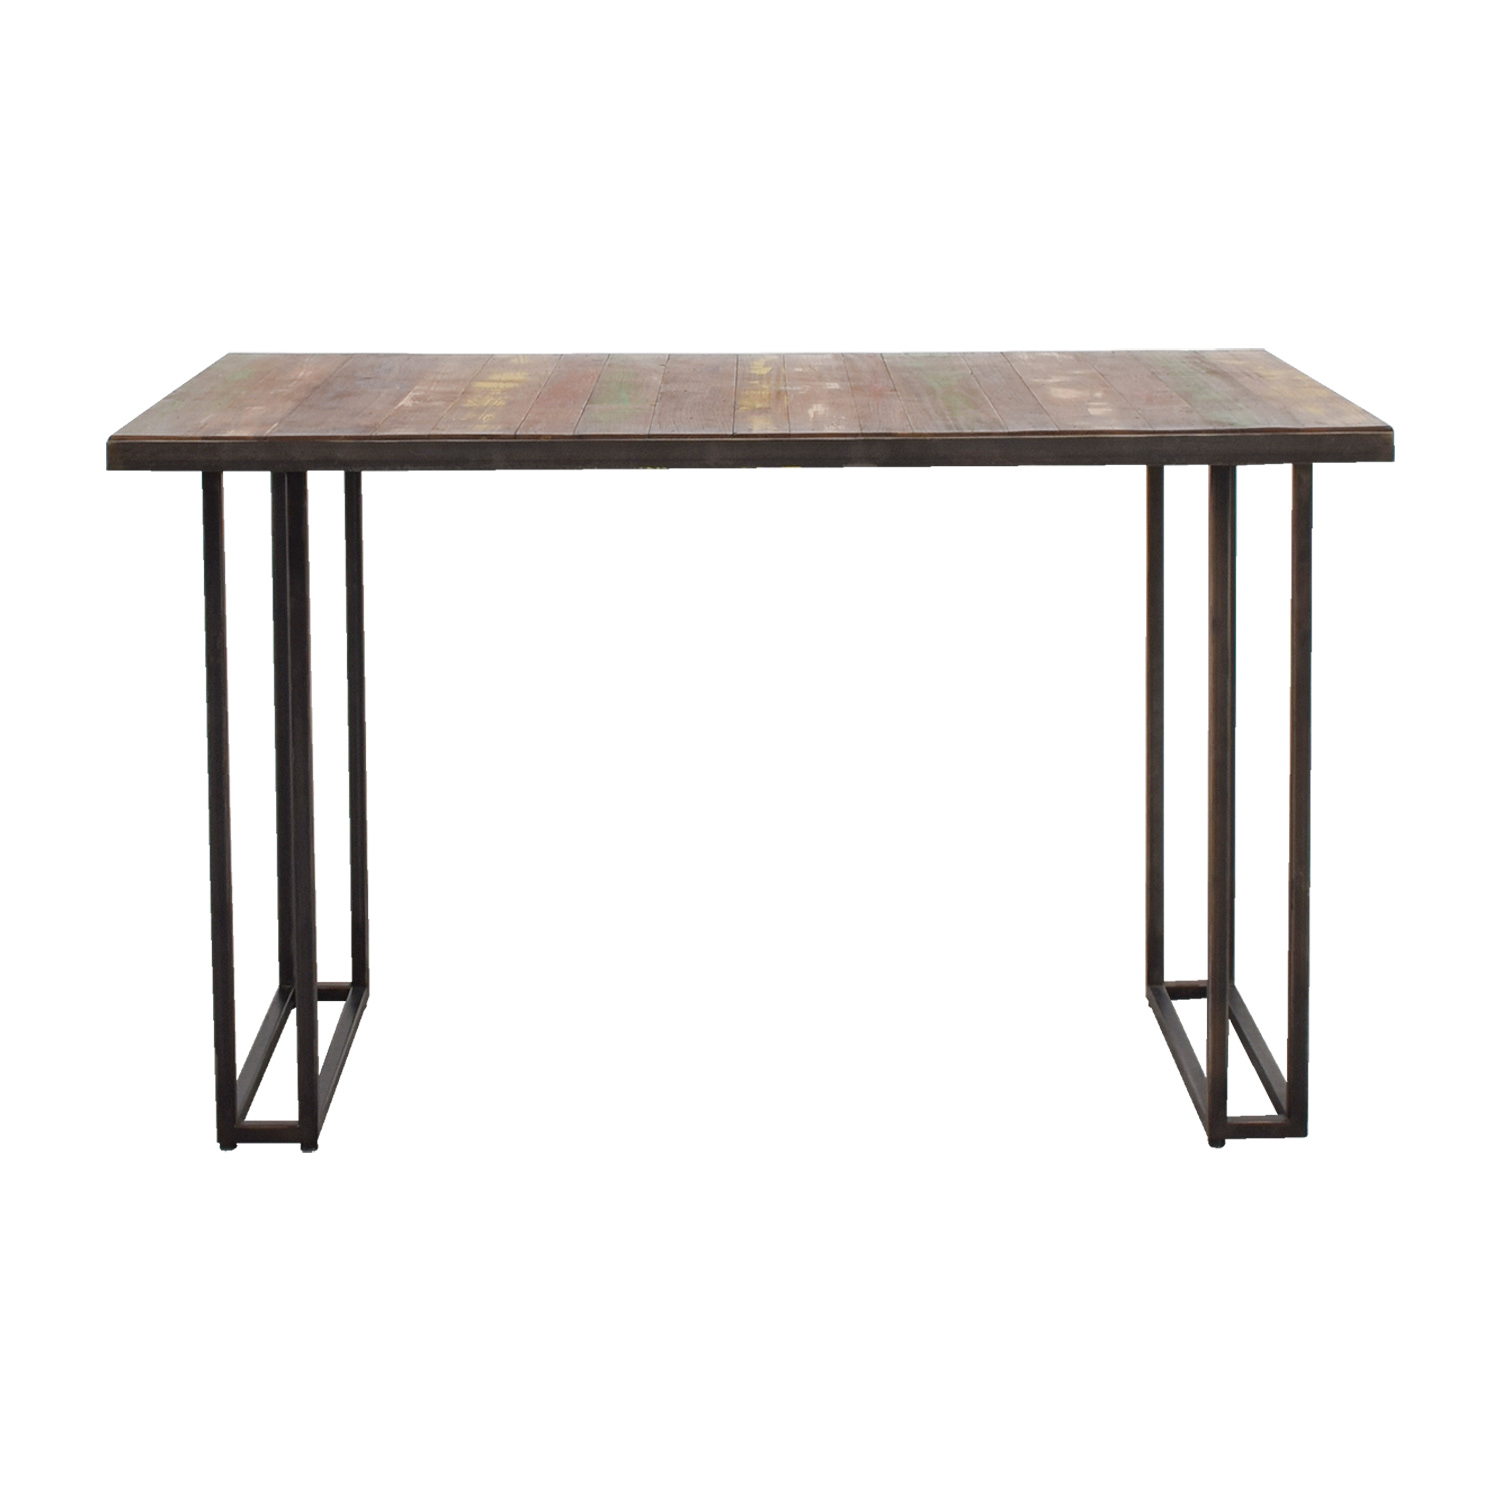 West Elm Wood & Colored Dining Table / Dinner Tables